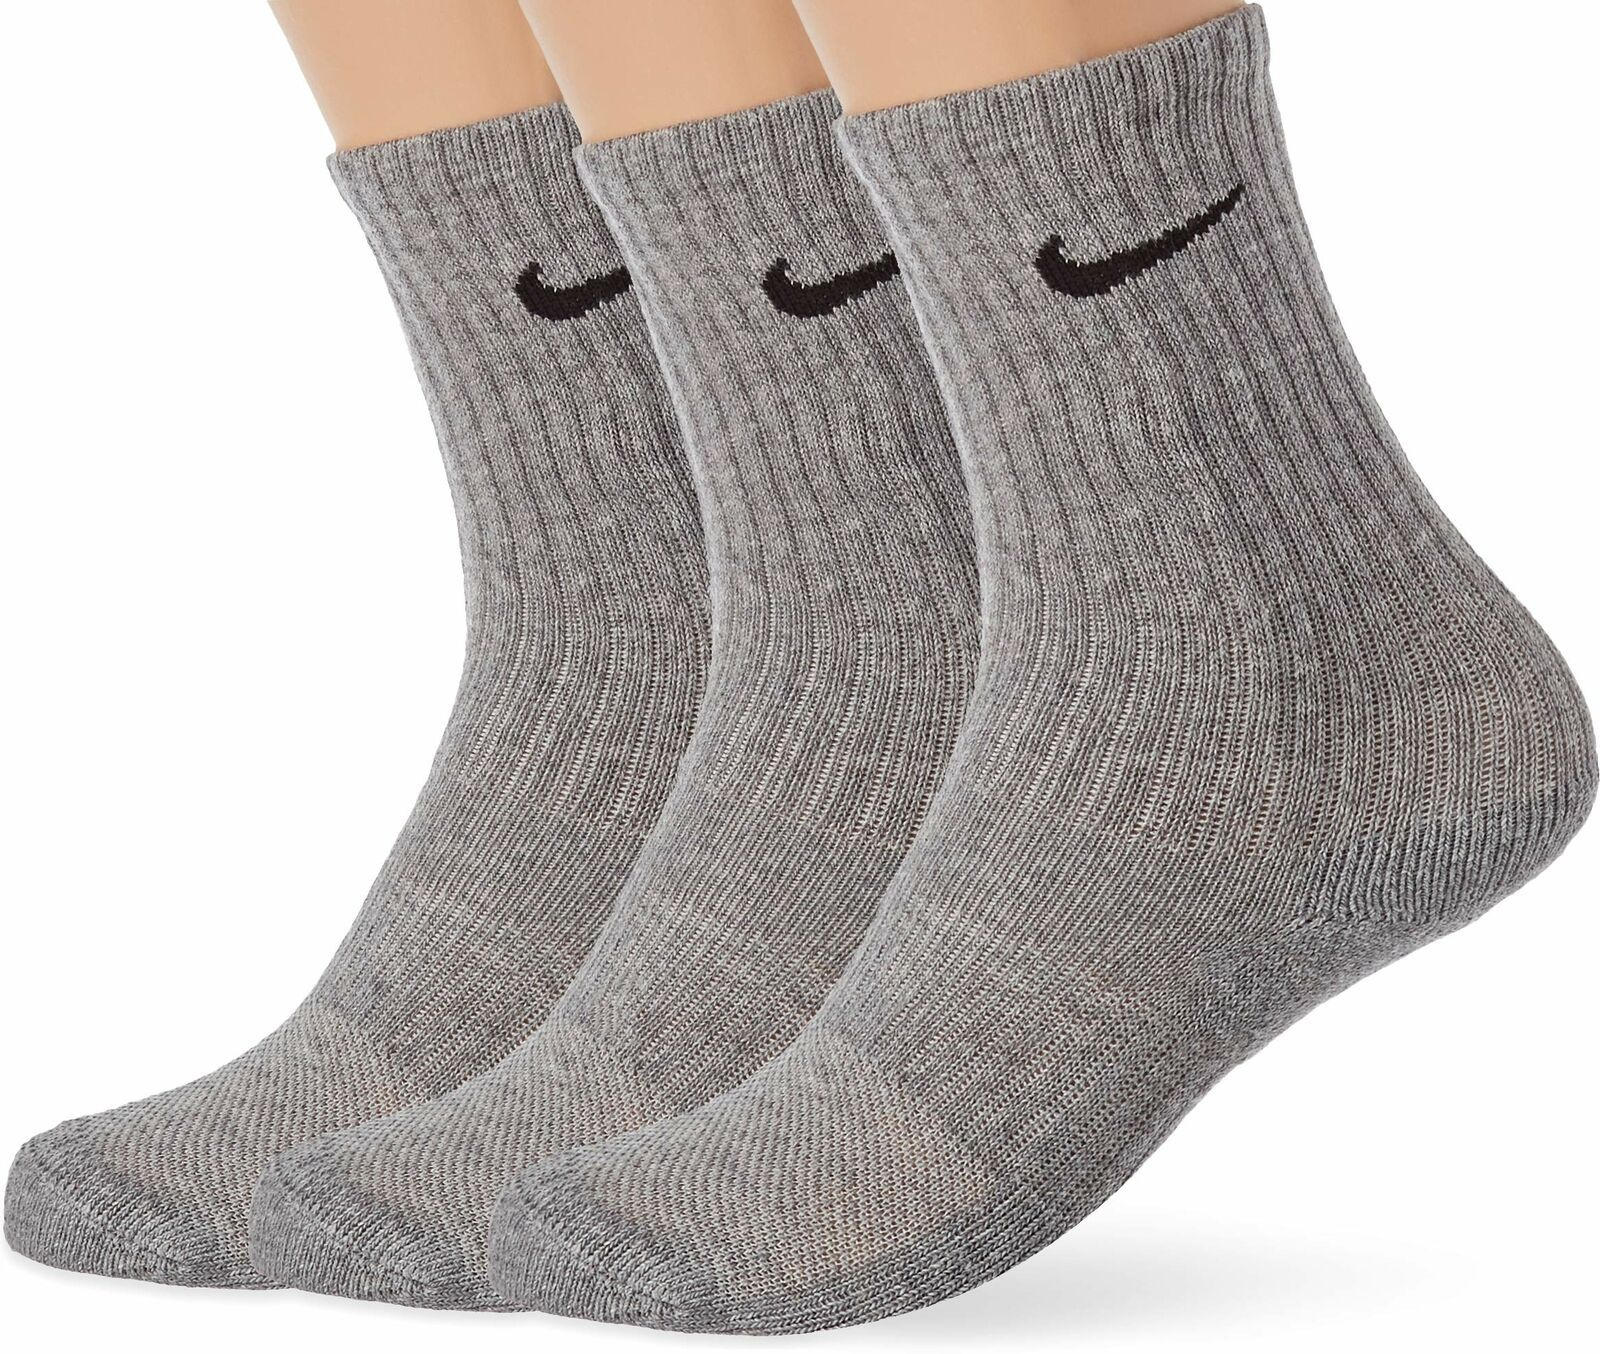 Primary image for Nike Youth 3PK Performance Cushioned Crew Socks Heather Gray 5Y-7Y SX6842-063